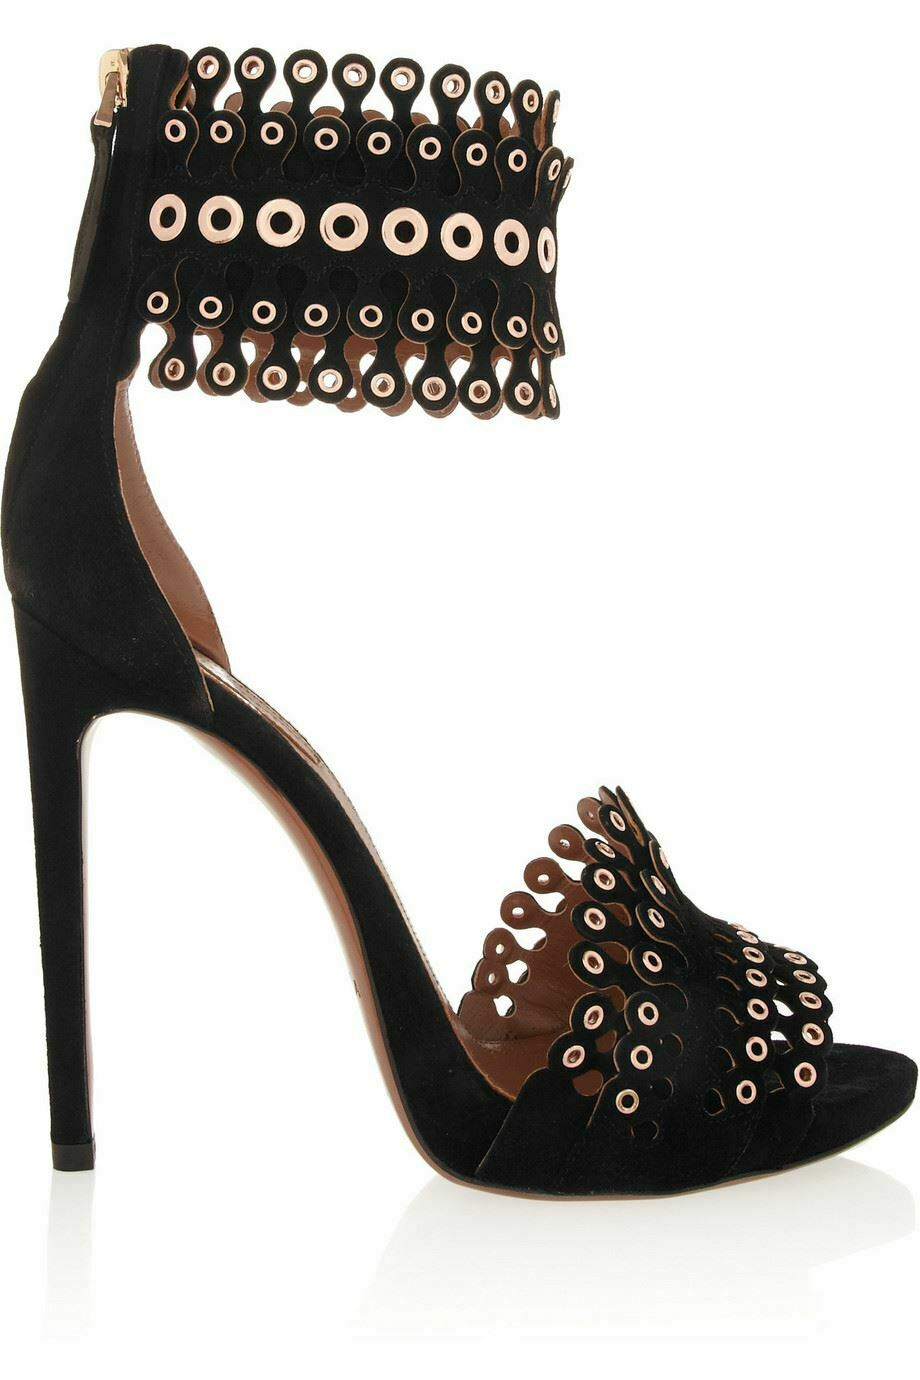 AZZEDINE ALAIA EYELET EMBELLISHED SCALLOPED SUEDE SANDALS EU 38 UK 5 US 8